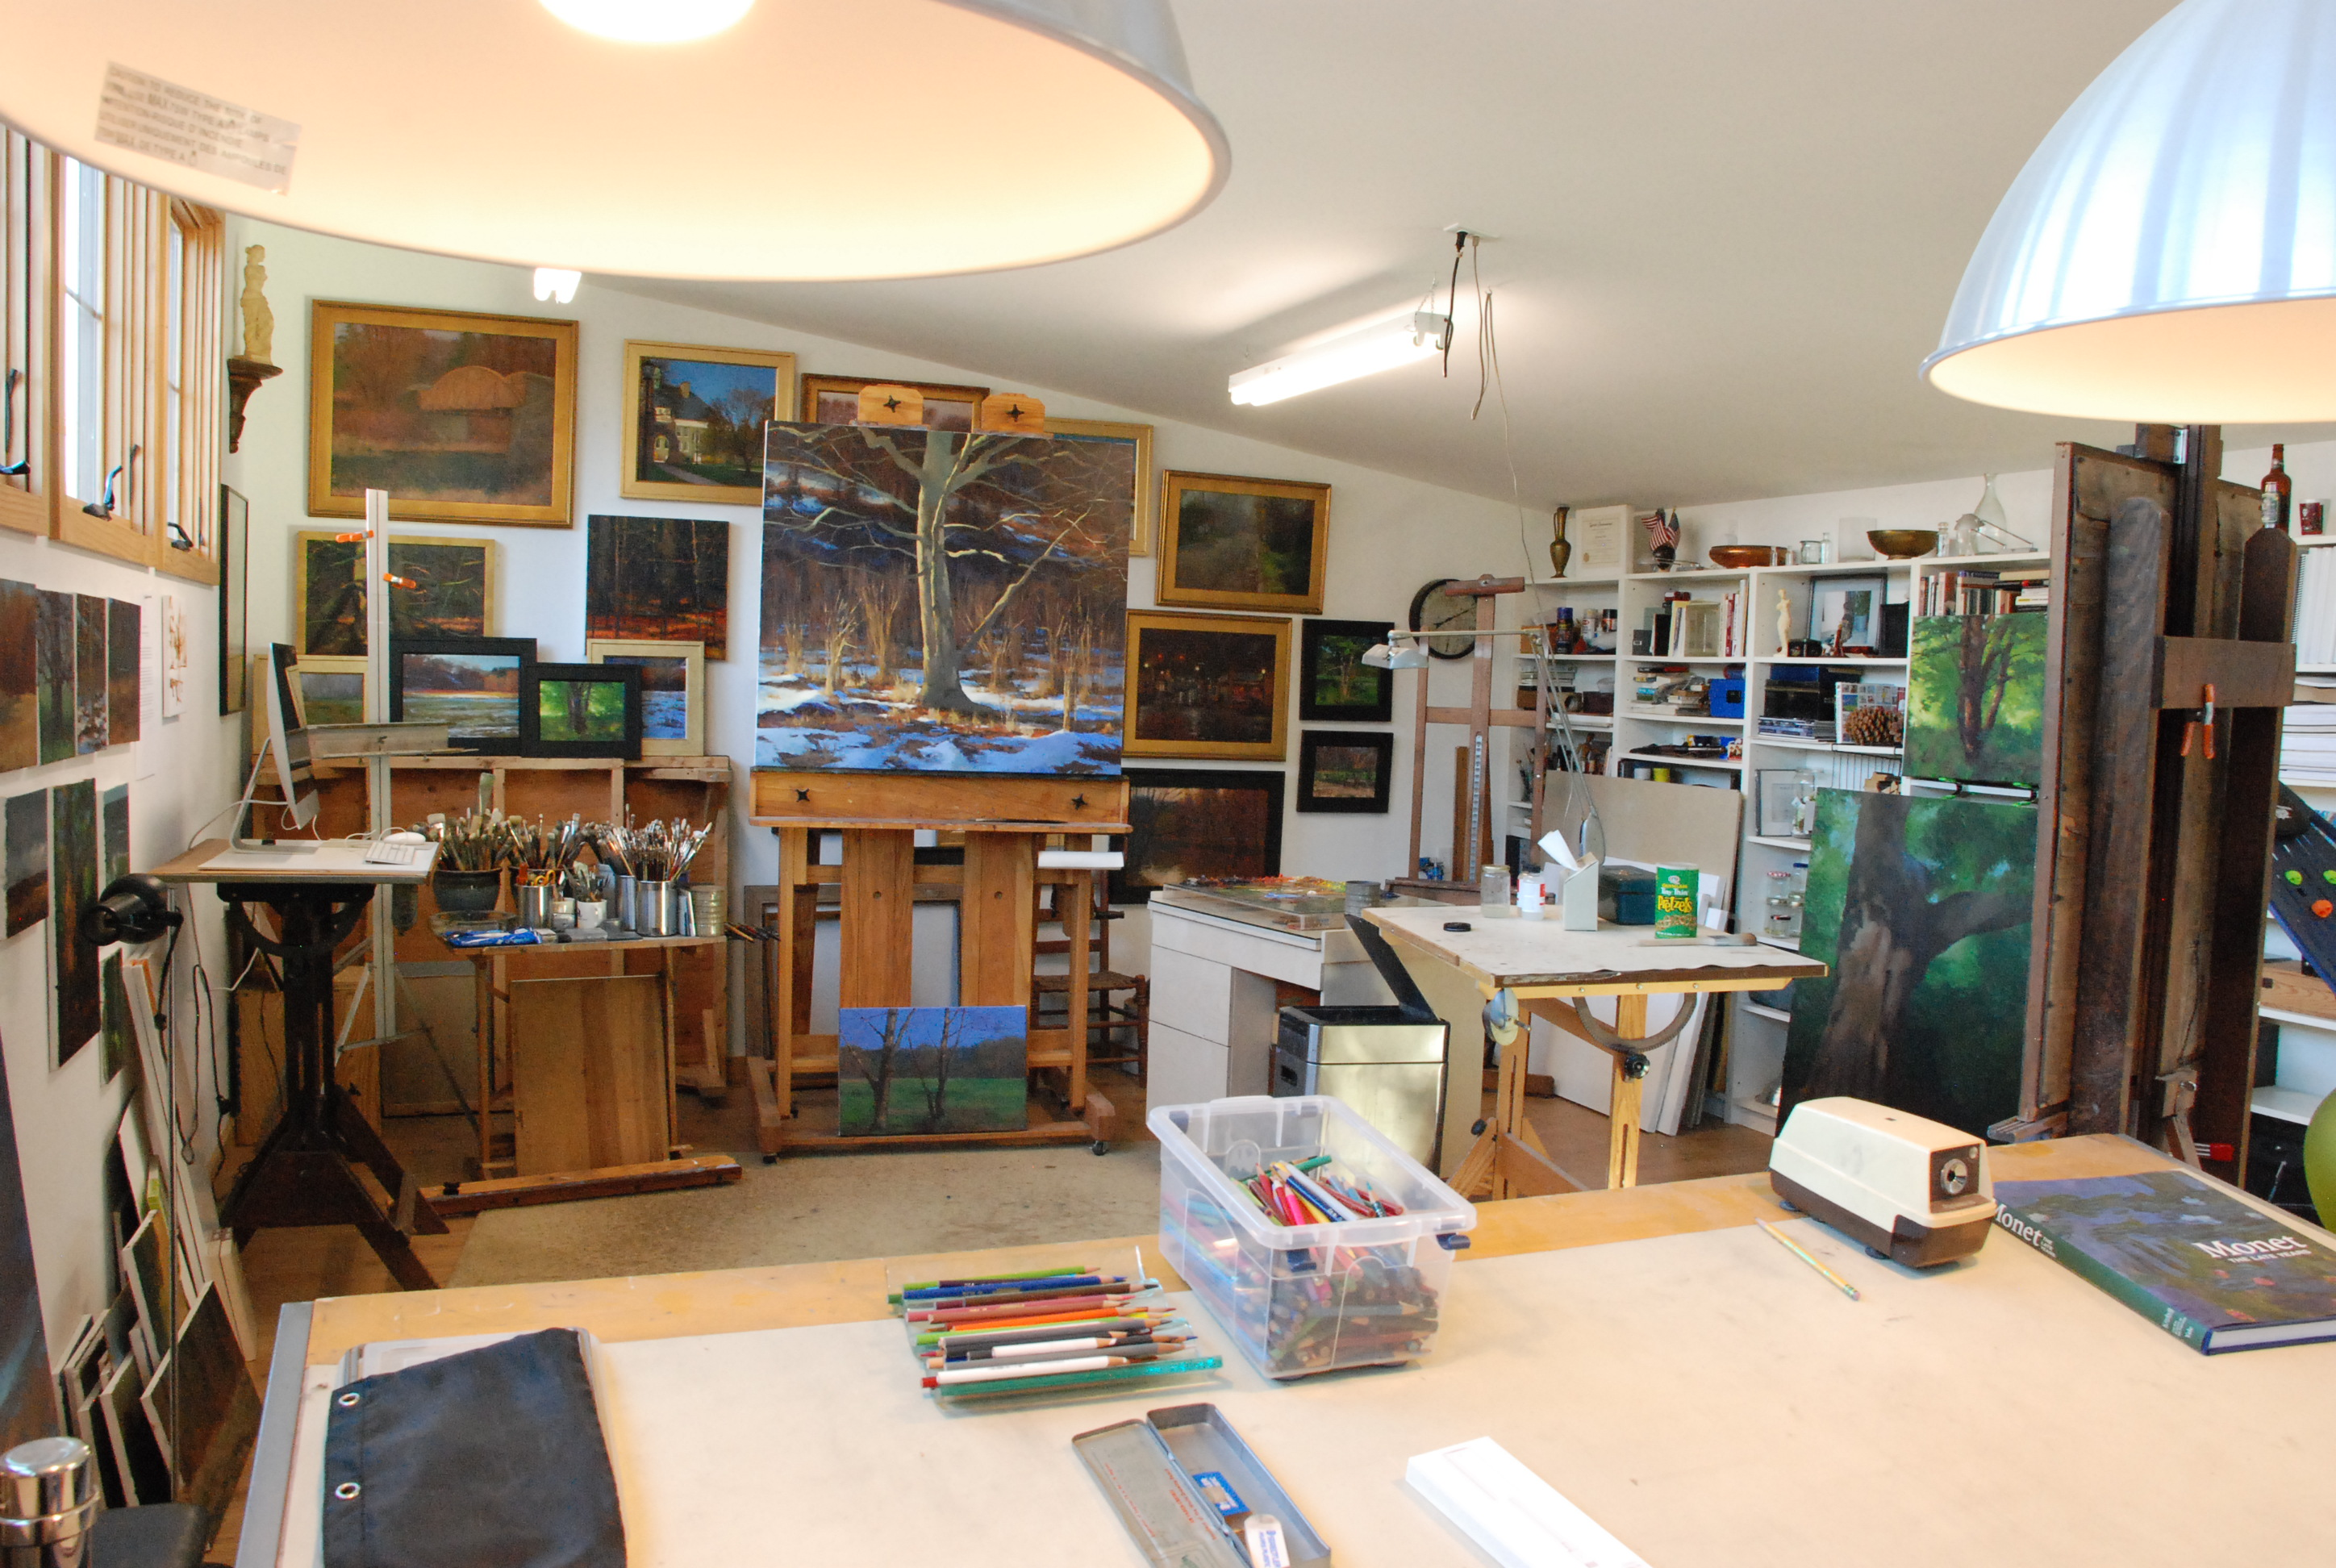 Gregory Blue Studio